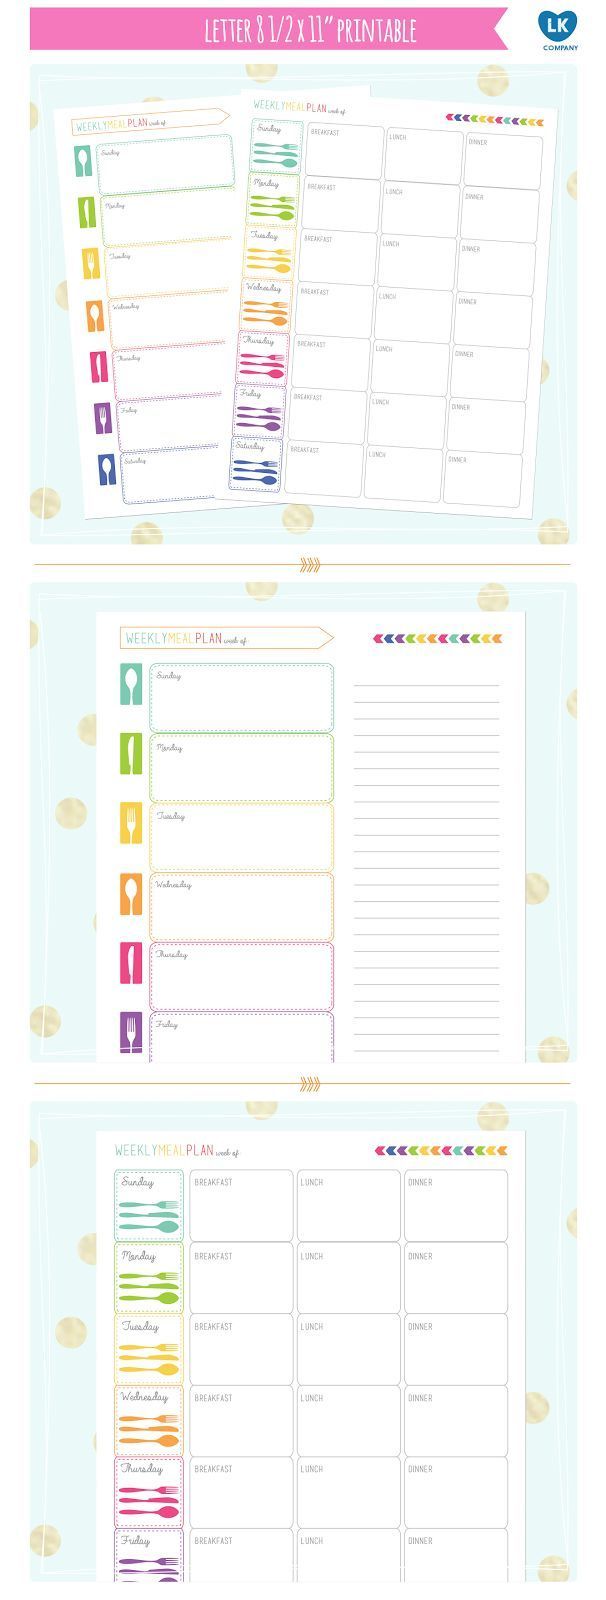 Best 54 Printables ideas on Pinterest | Households, Planners and ...